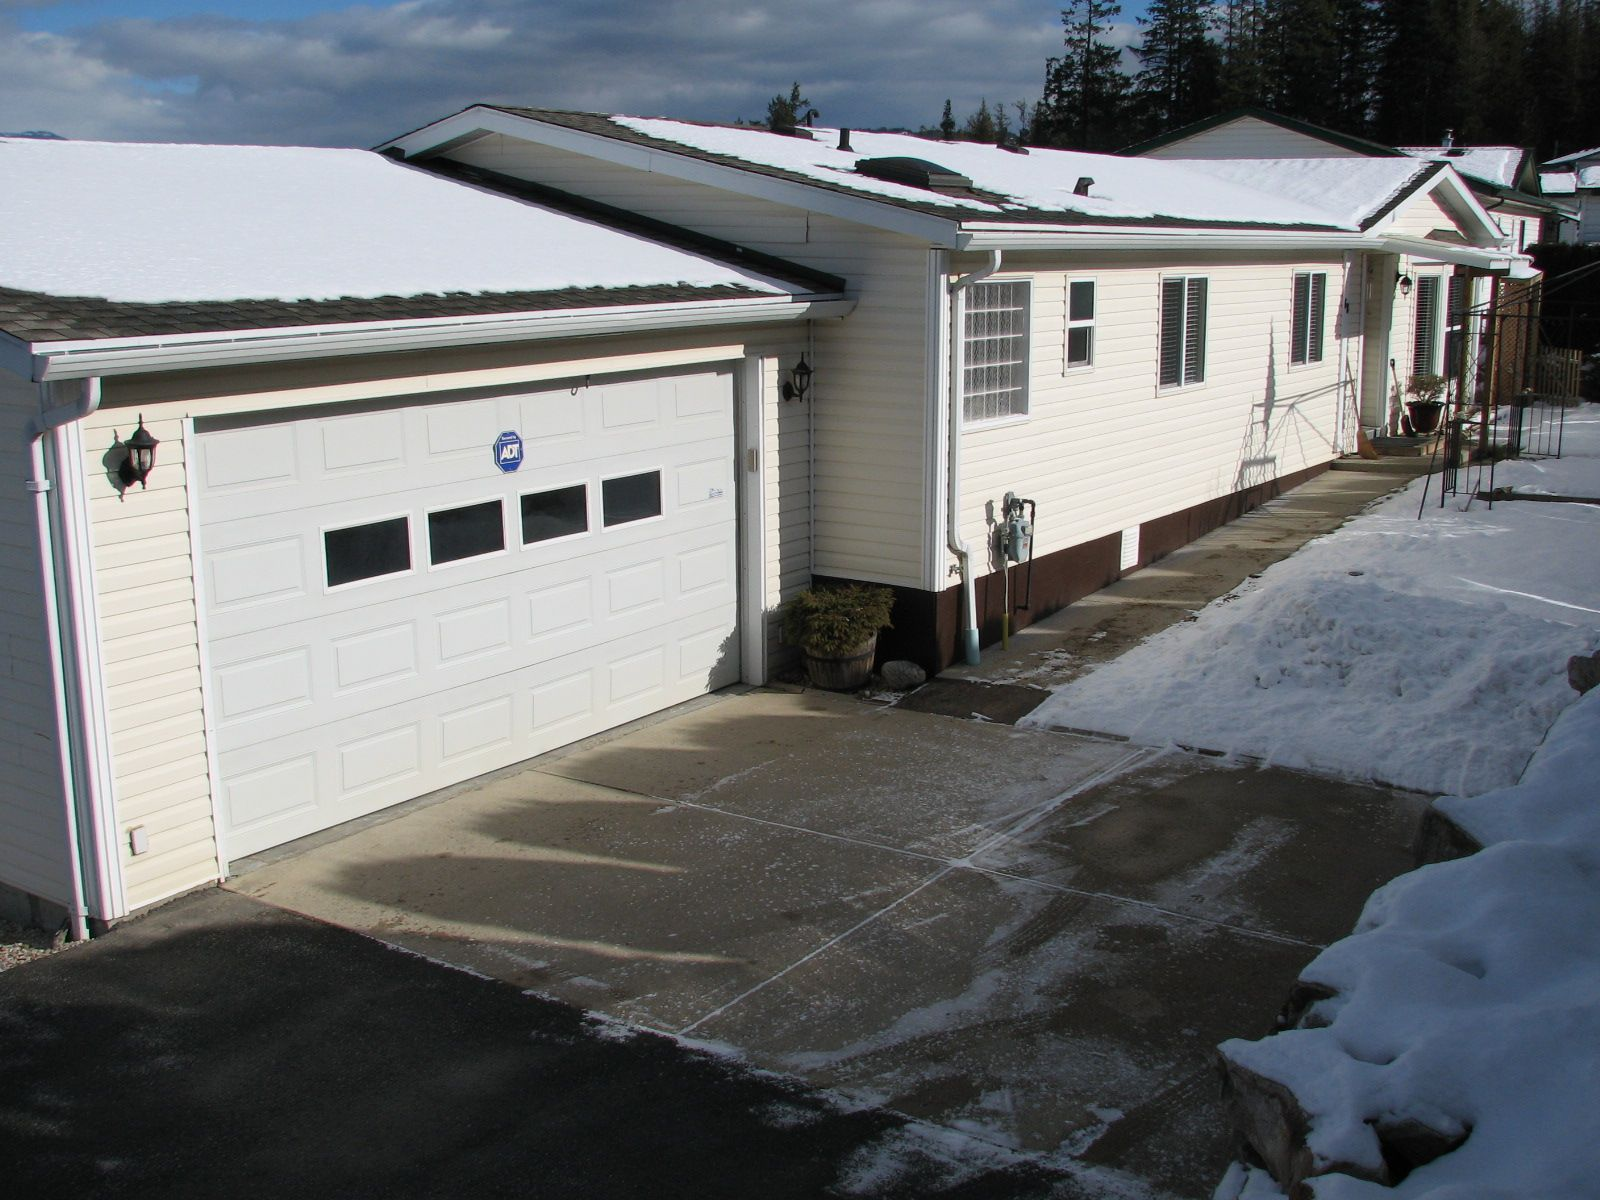 Main Photo: 68 1510 Tans Can Hwy: Sorrento Manufactured Home for sale (Shuswap)  : MLS®# 10225678